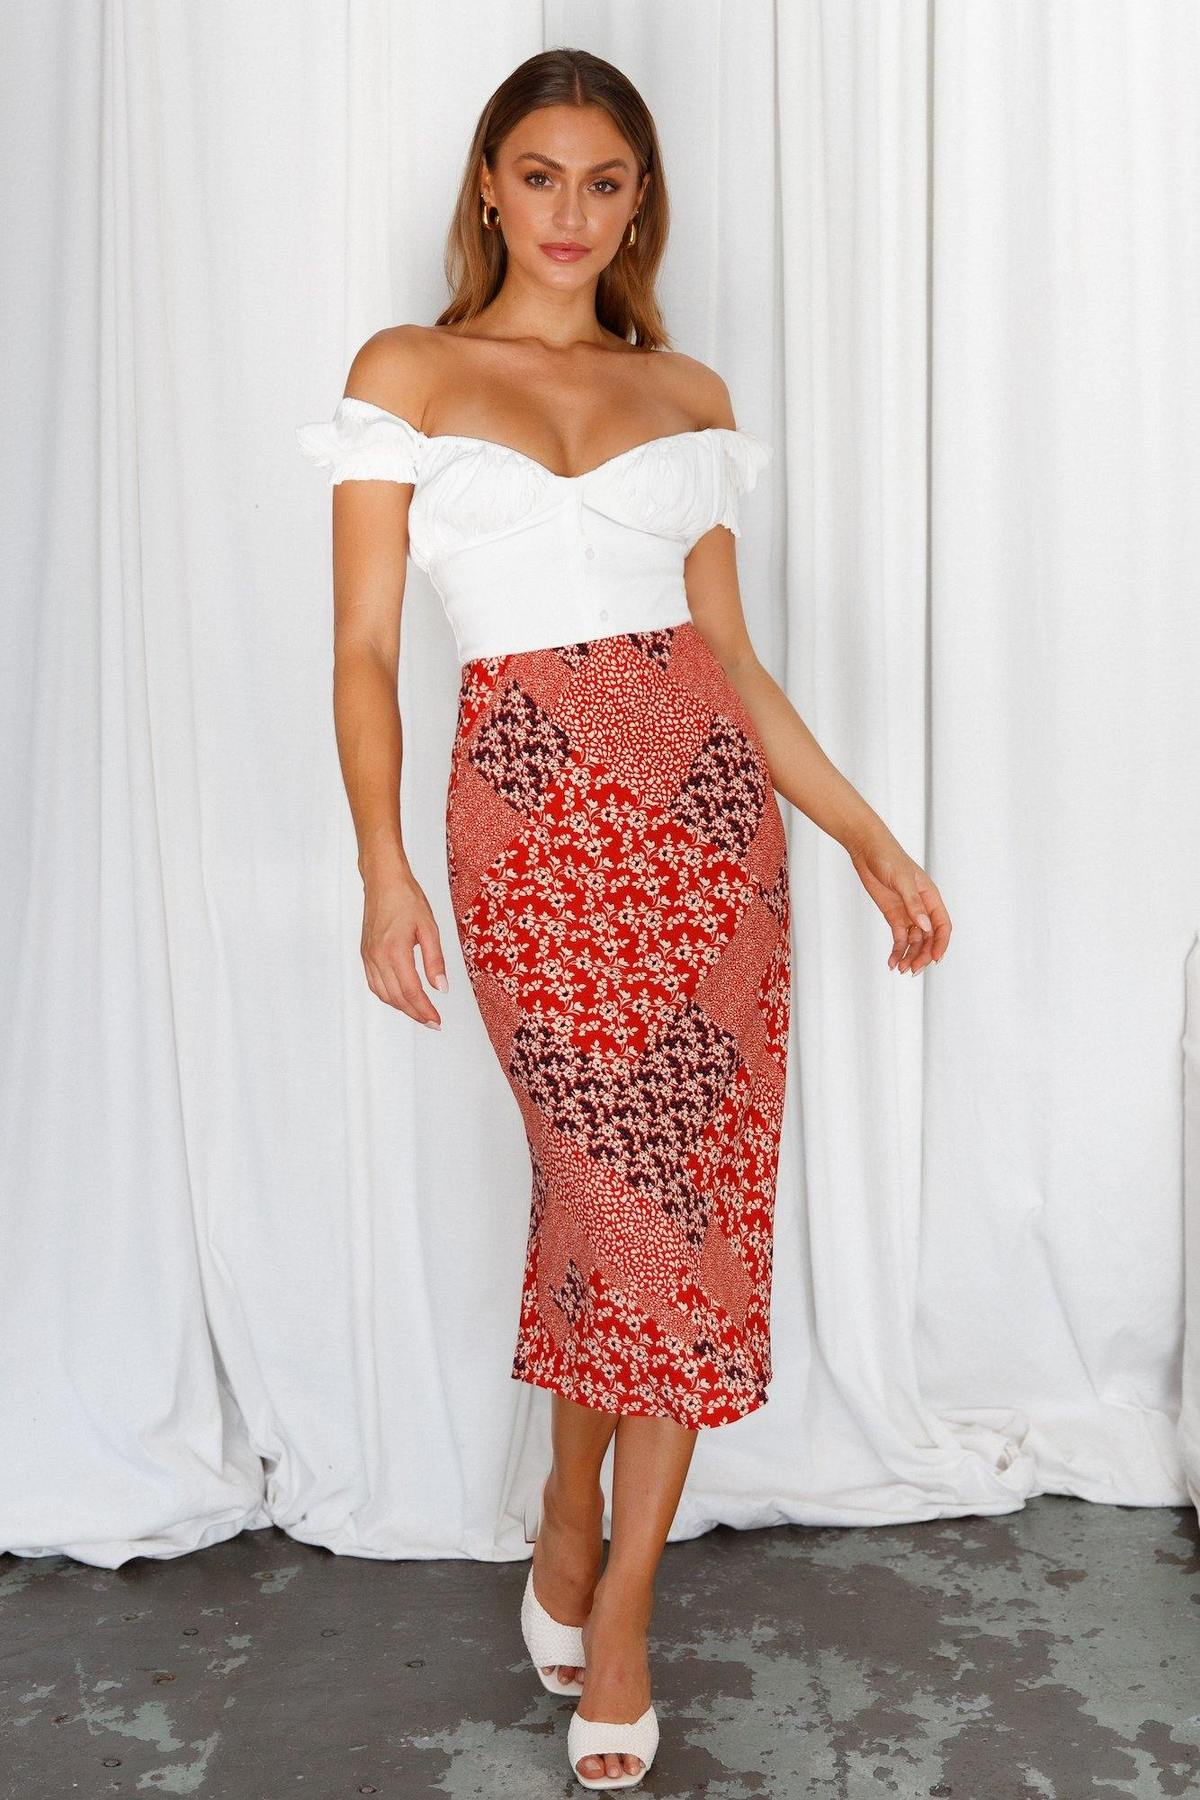 What To Wear To A Boat Party: Midi skirt